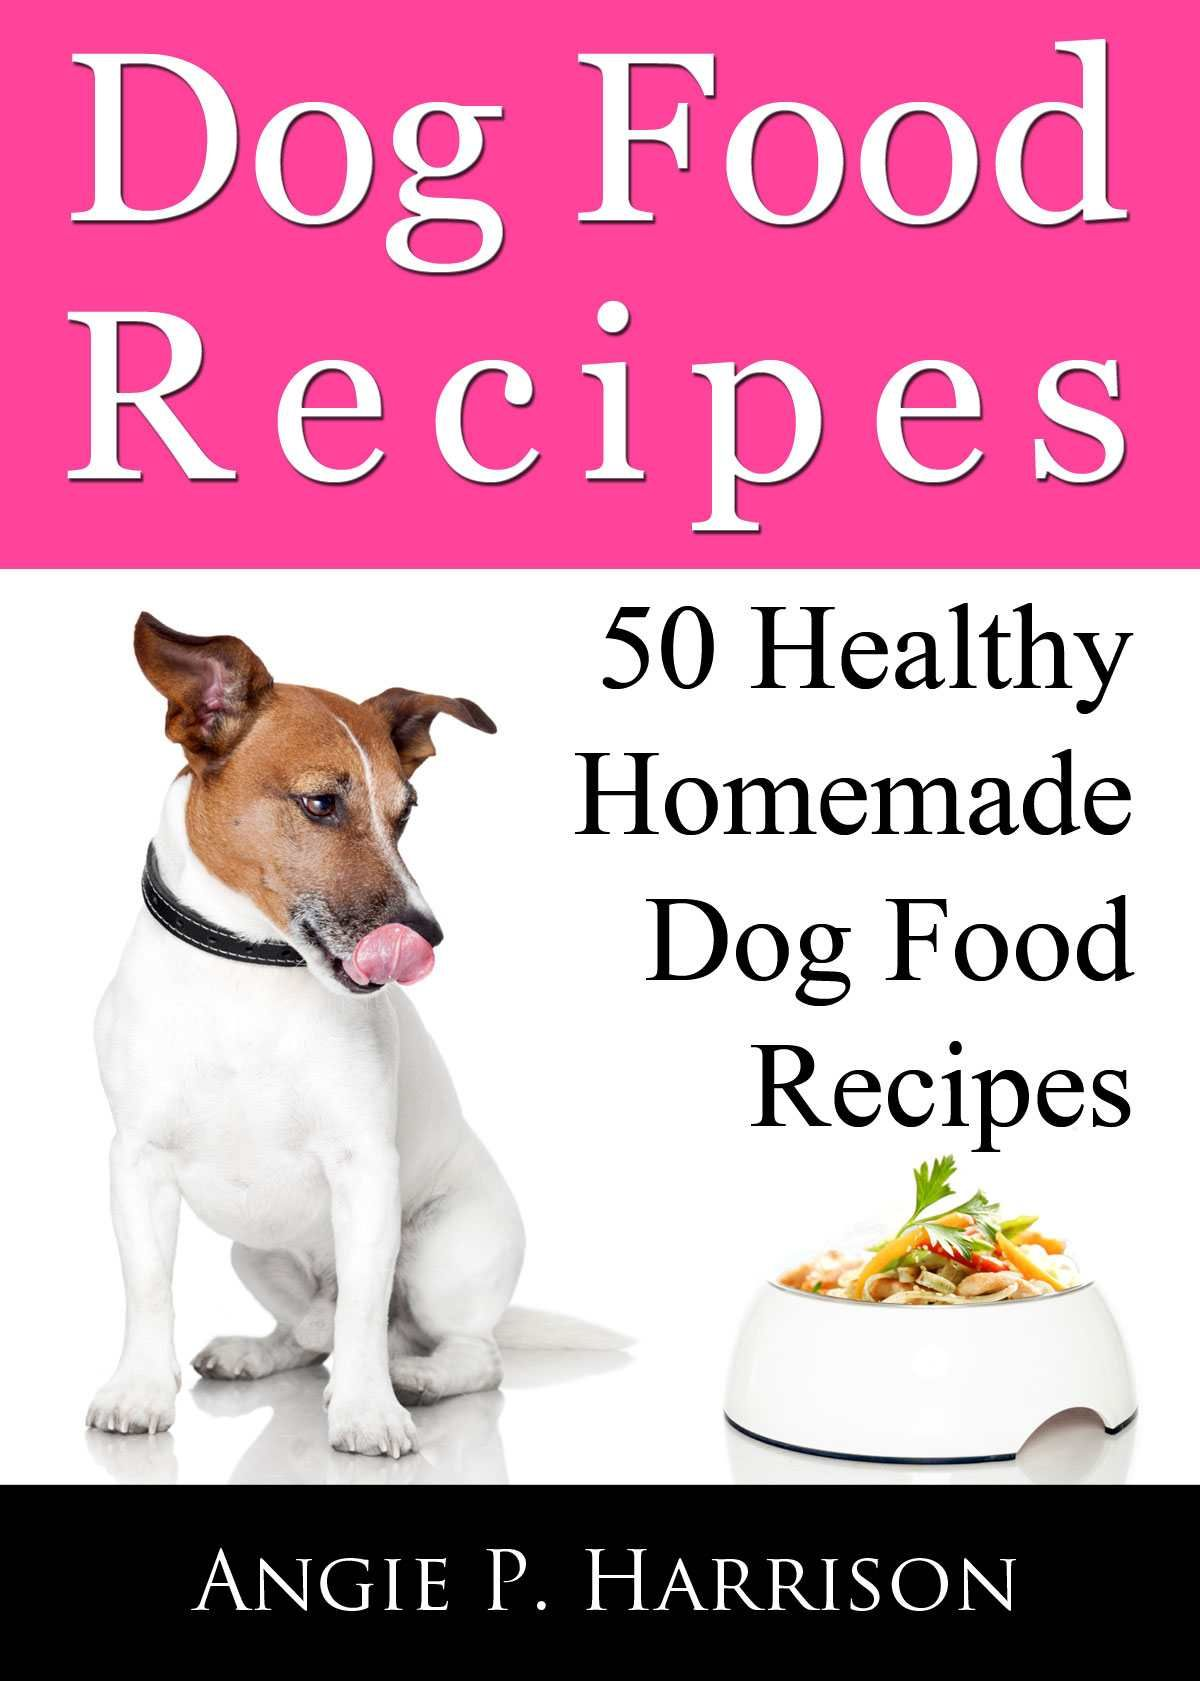 Amazon.com: Dog Food Recipes: 50 Healthy Homemade Dog Food Recipes eBook: Angie P. Harrison: Kindle Store